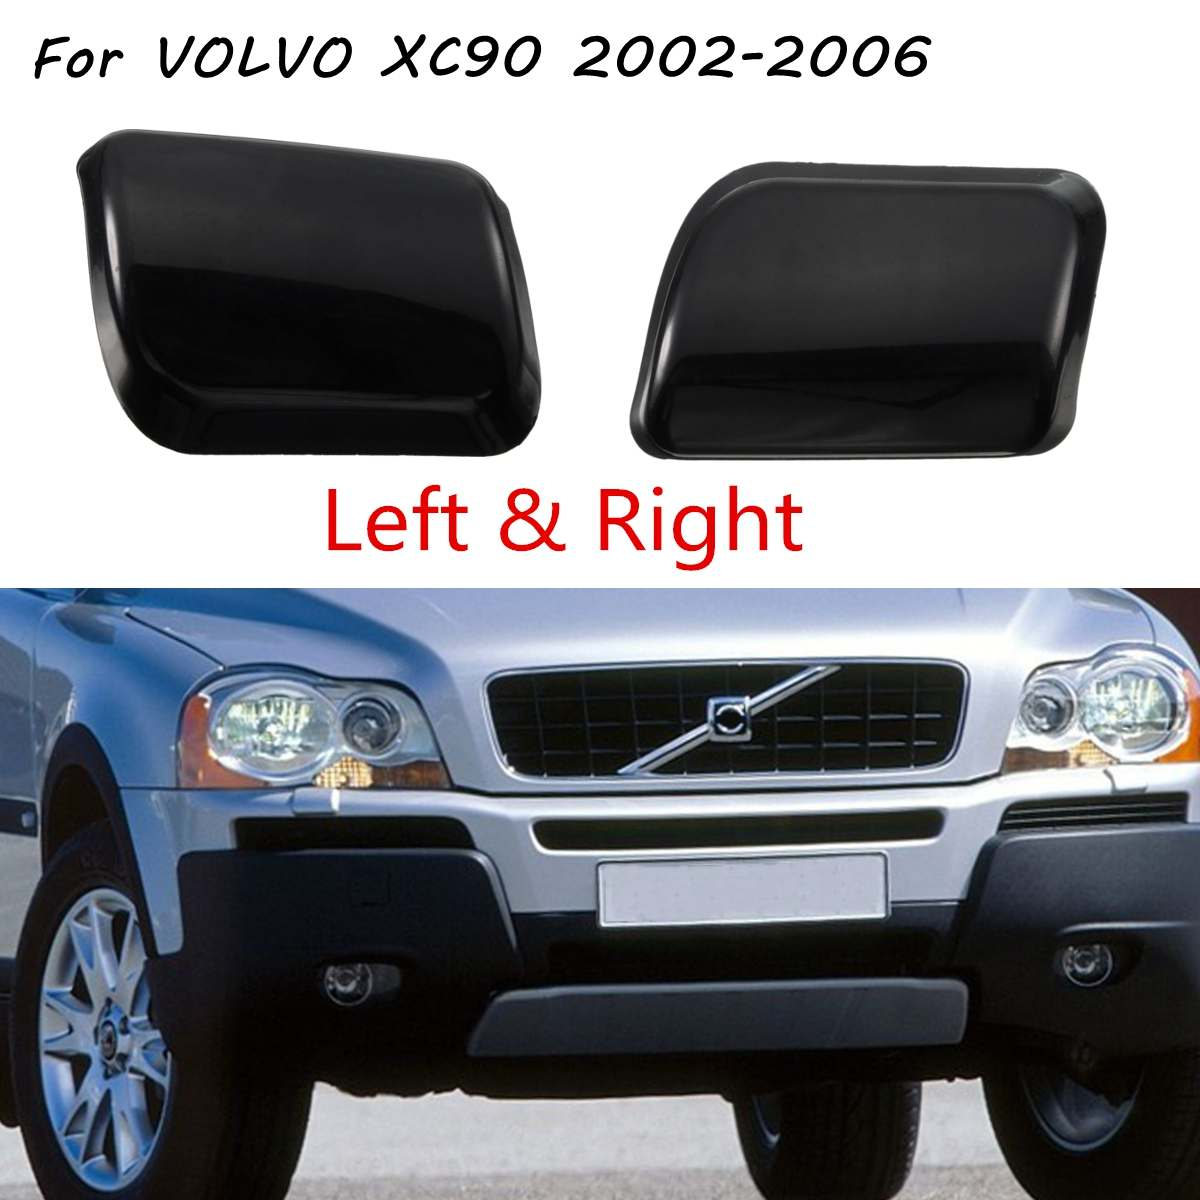 Front Bumper Headlamp Headlight Lamp Washer Jet Nozzle Cover Cap For <font><b>VOLVO</b></font> <font><b>XC90</b></font> 2002 <font><b>2003</b></font> 2004 2005 2006 image